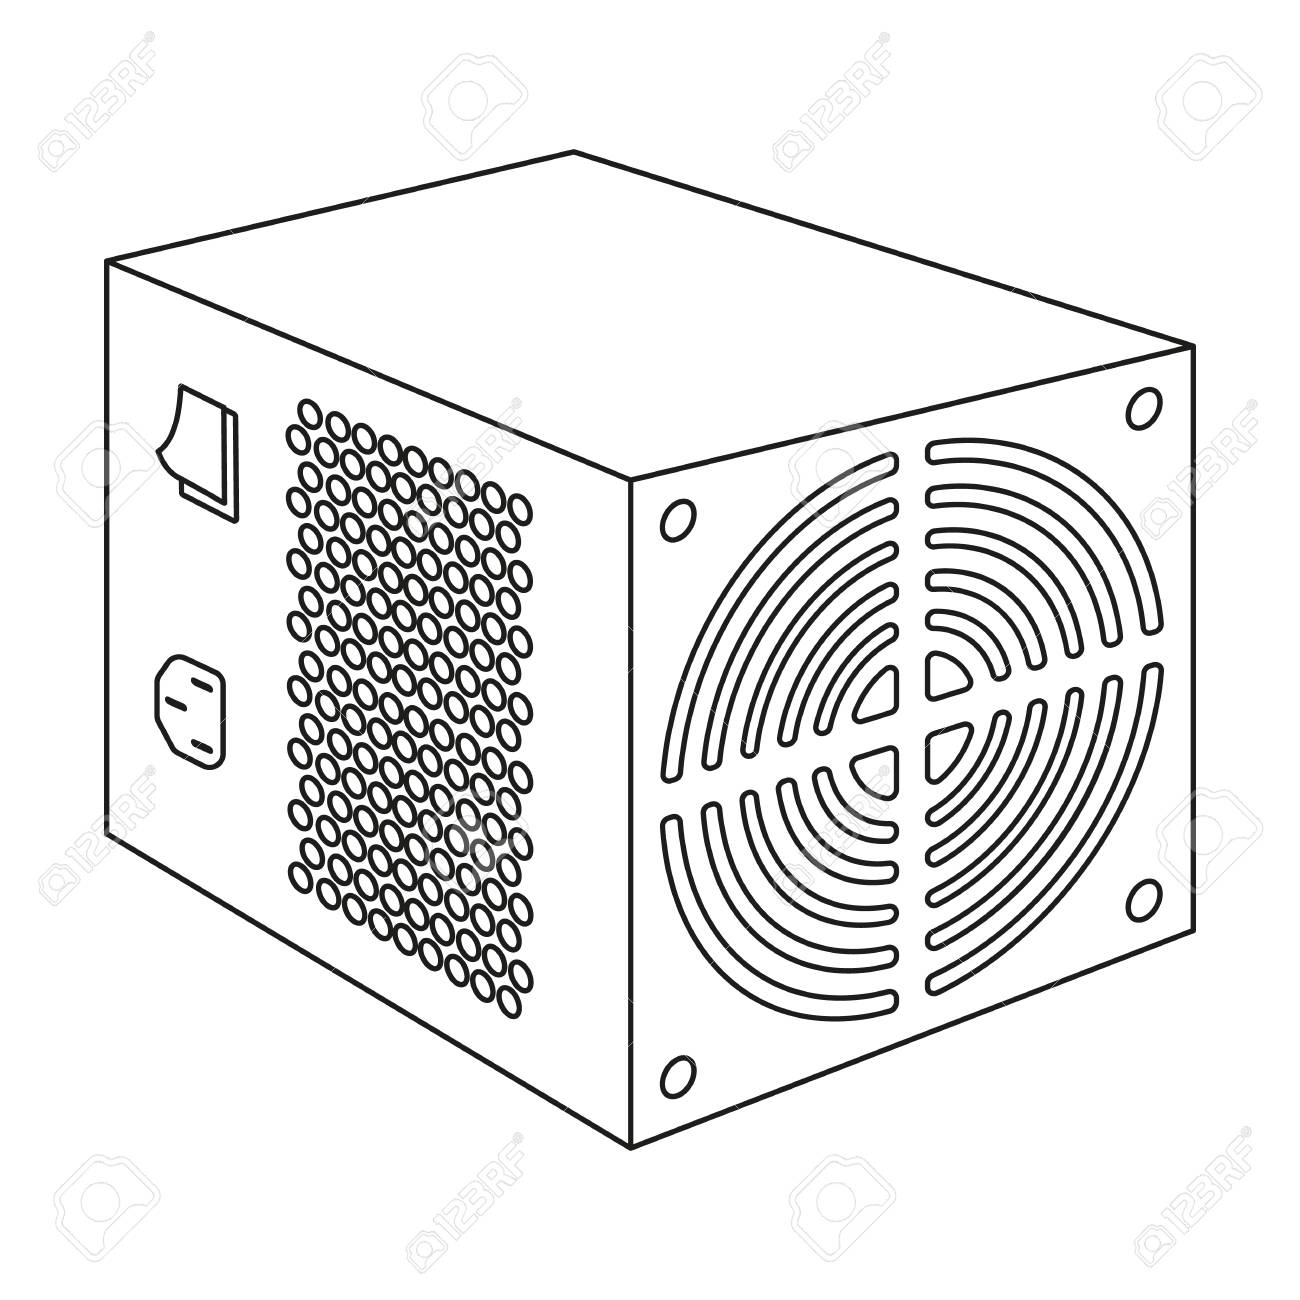 hight resolution of power supply unit icon in outline style isolated on white background personal computer accessories symbol